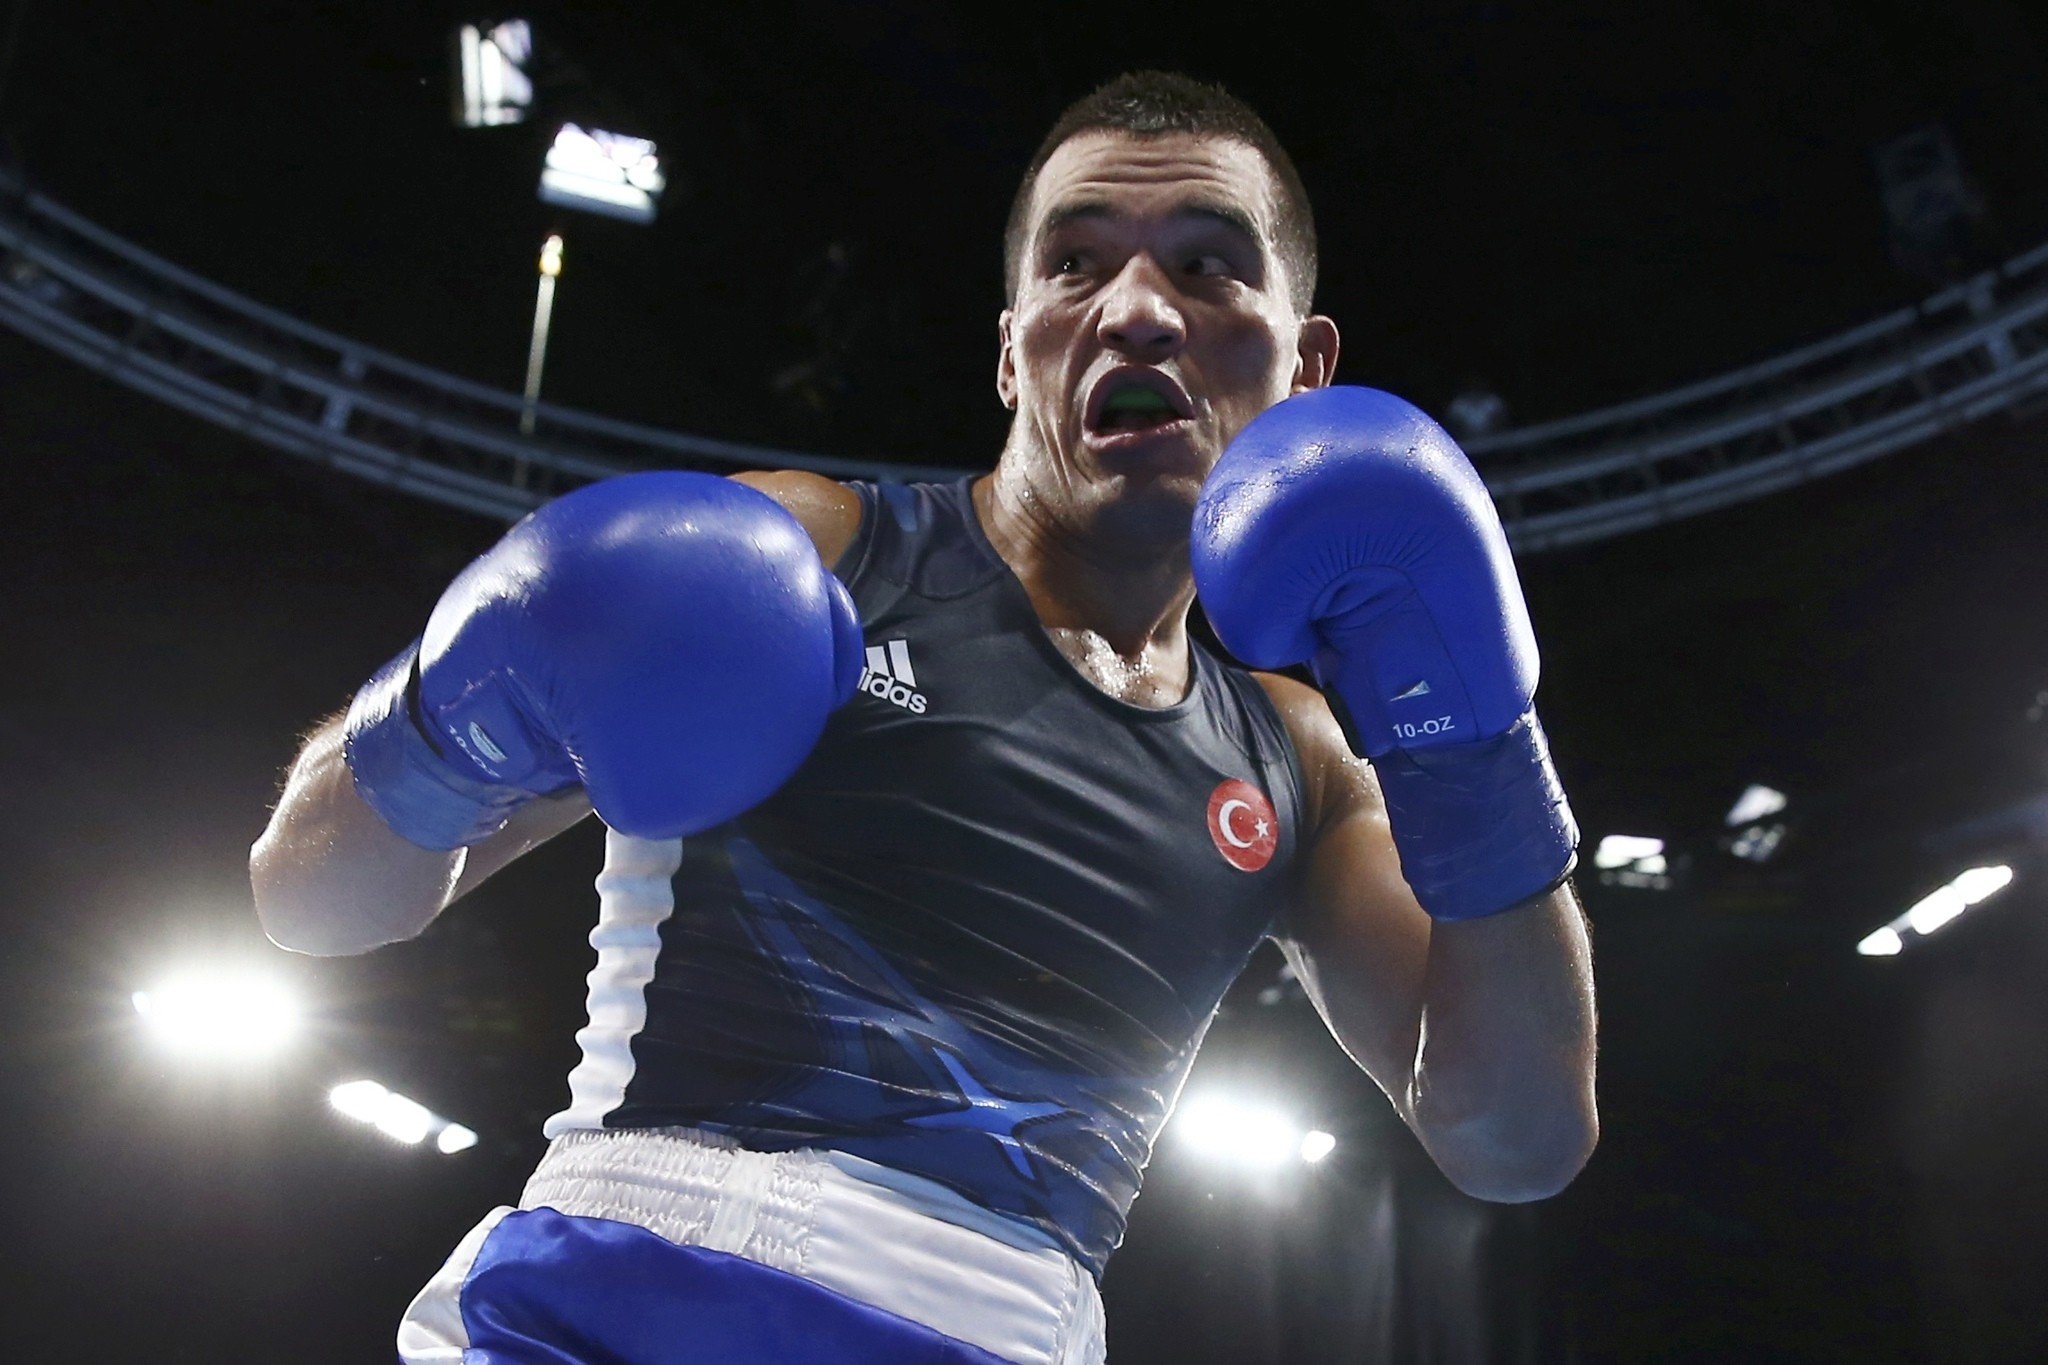 Batuhan Gu00f6zgeu00e7 of Turkey competed in the 2016 Rio Olympics in the Men's Light Welter (64kg) quarterfinal.